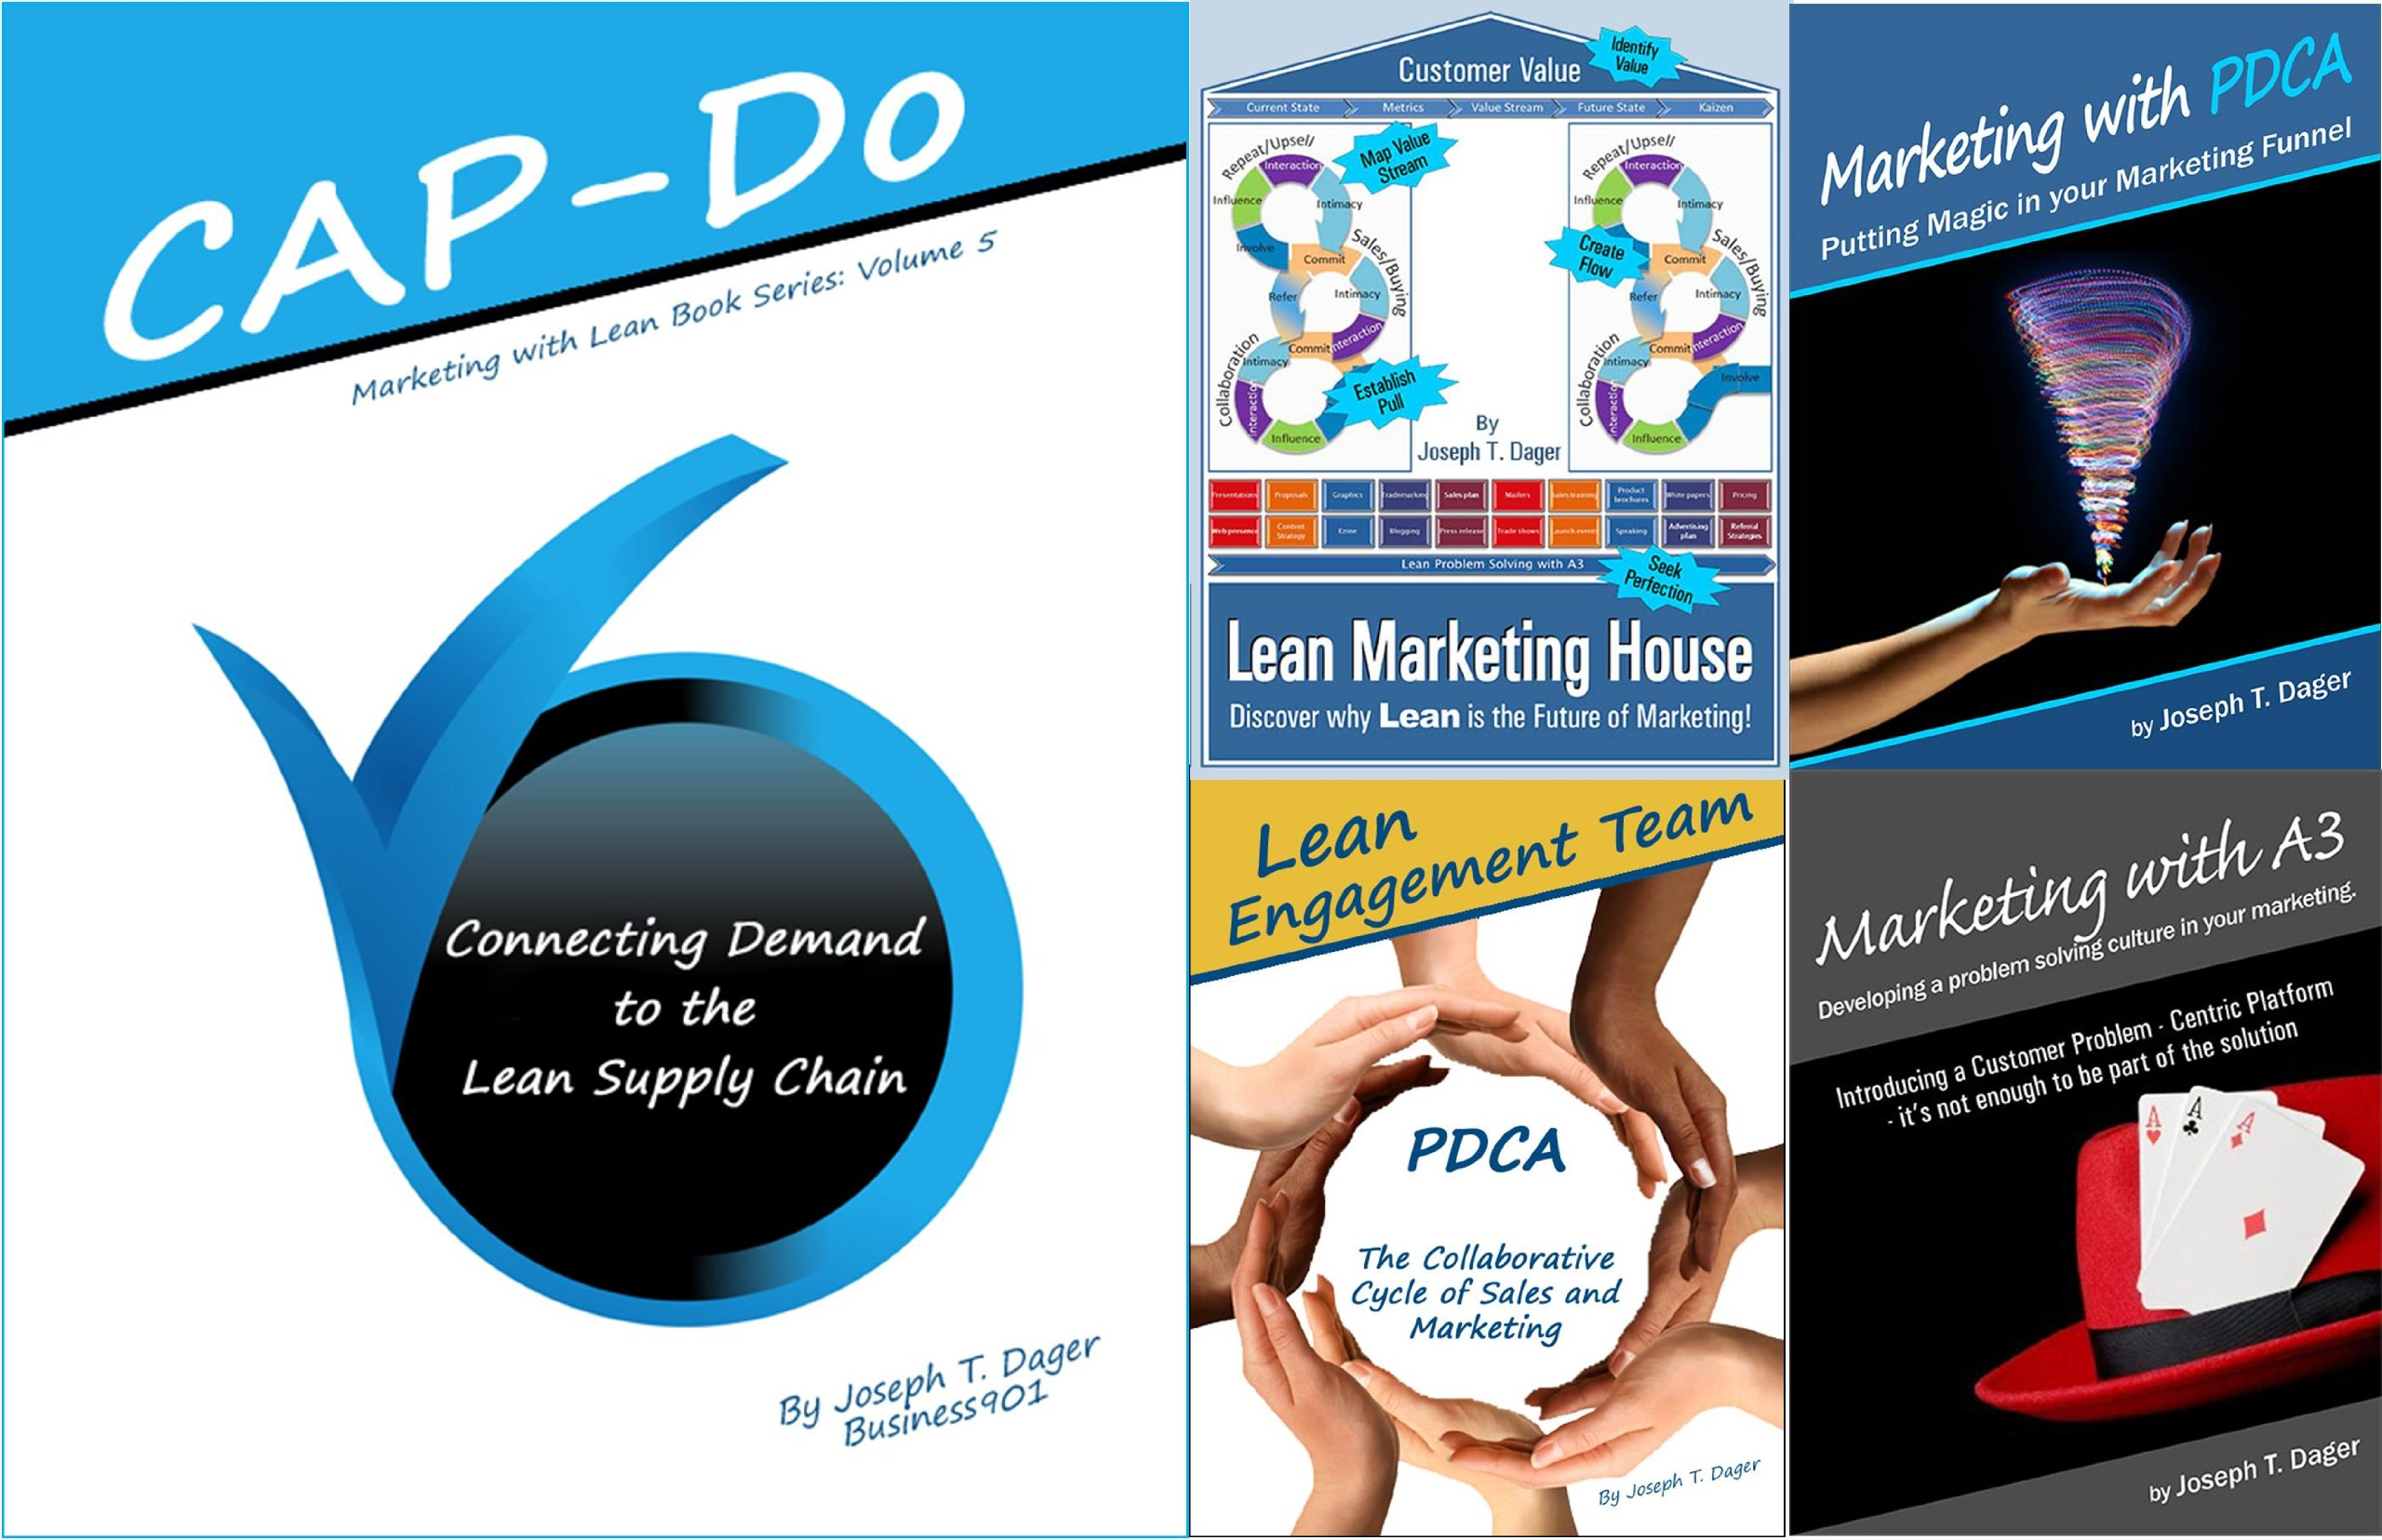 Marketing with Lean includes Lean Marketing House, CAP-Do, Marketing with PDCA, Marketing with A3, Lean Engagement Team (Marketing with Lean Series) ebook